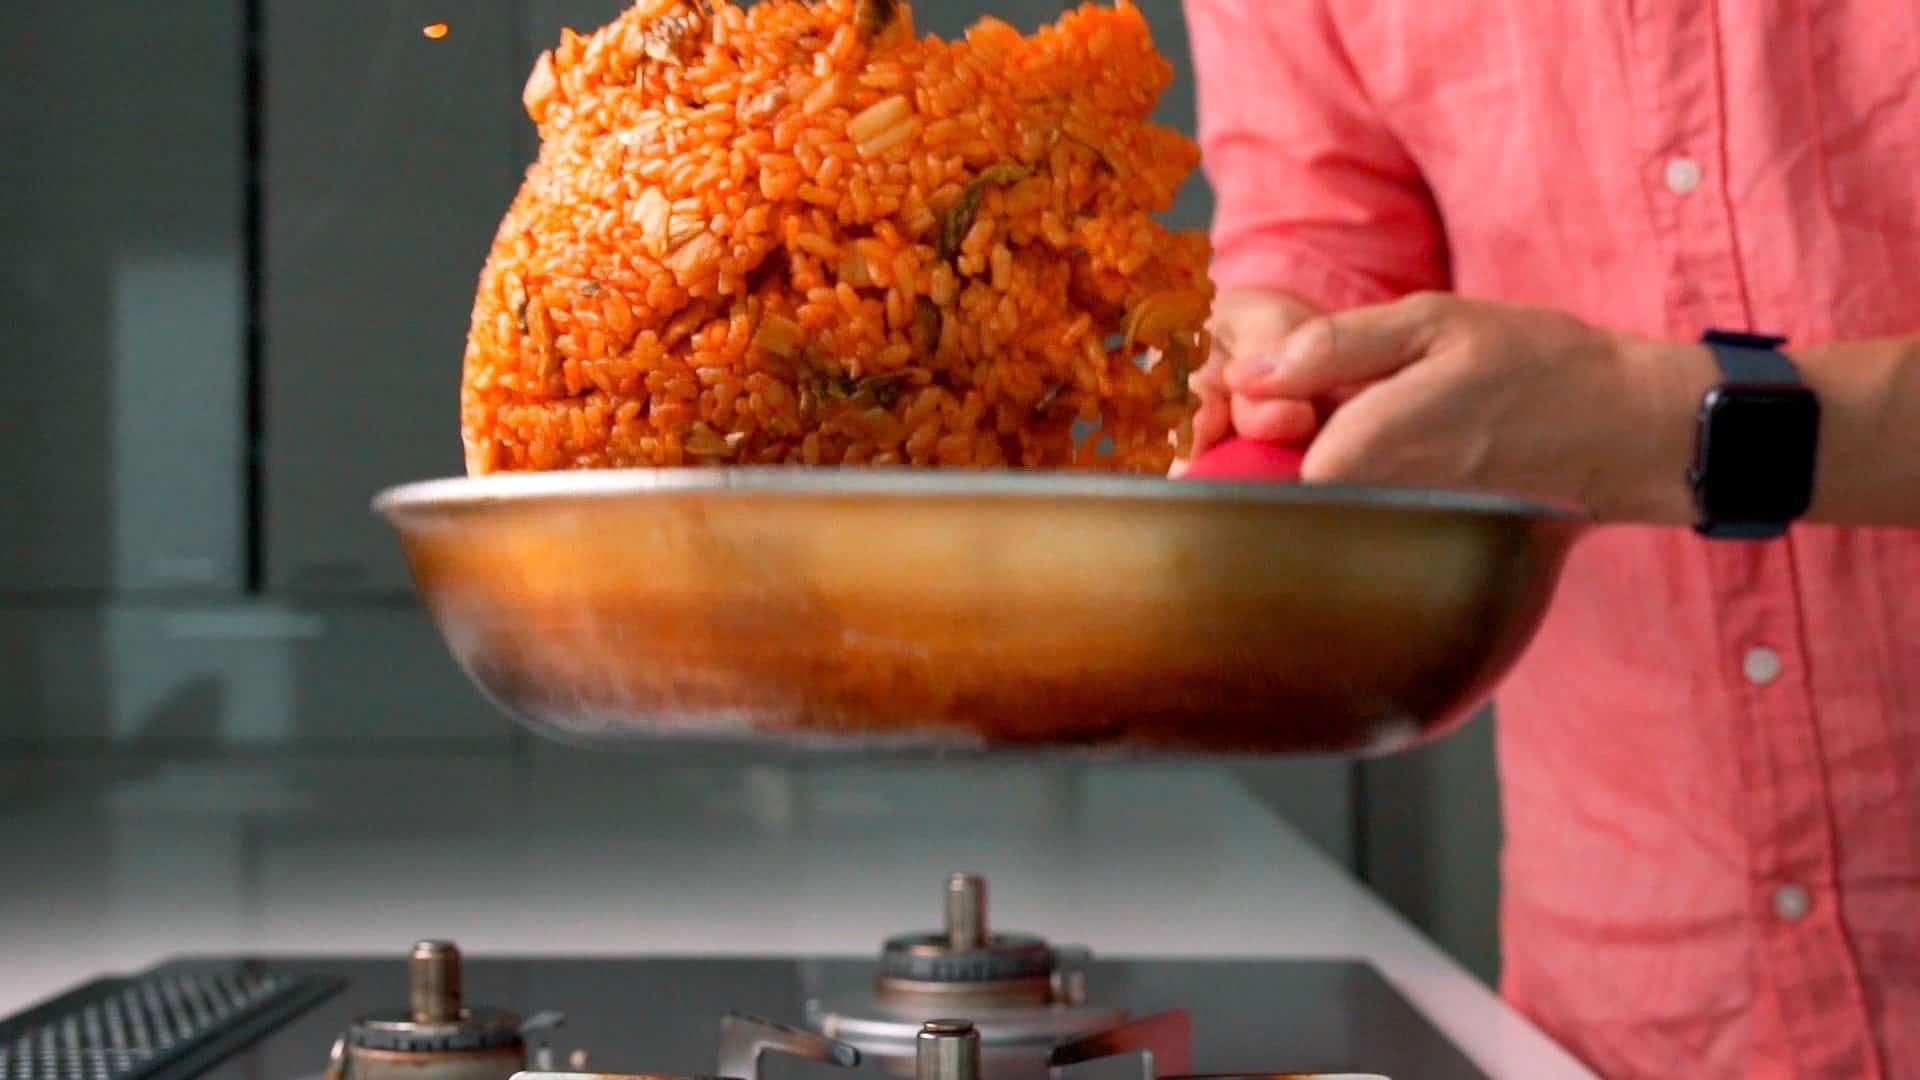 Tossing kimchi fried rice in a frying pan.